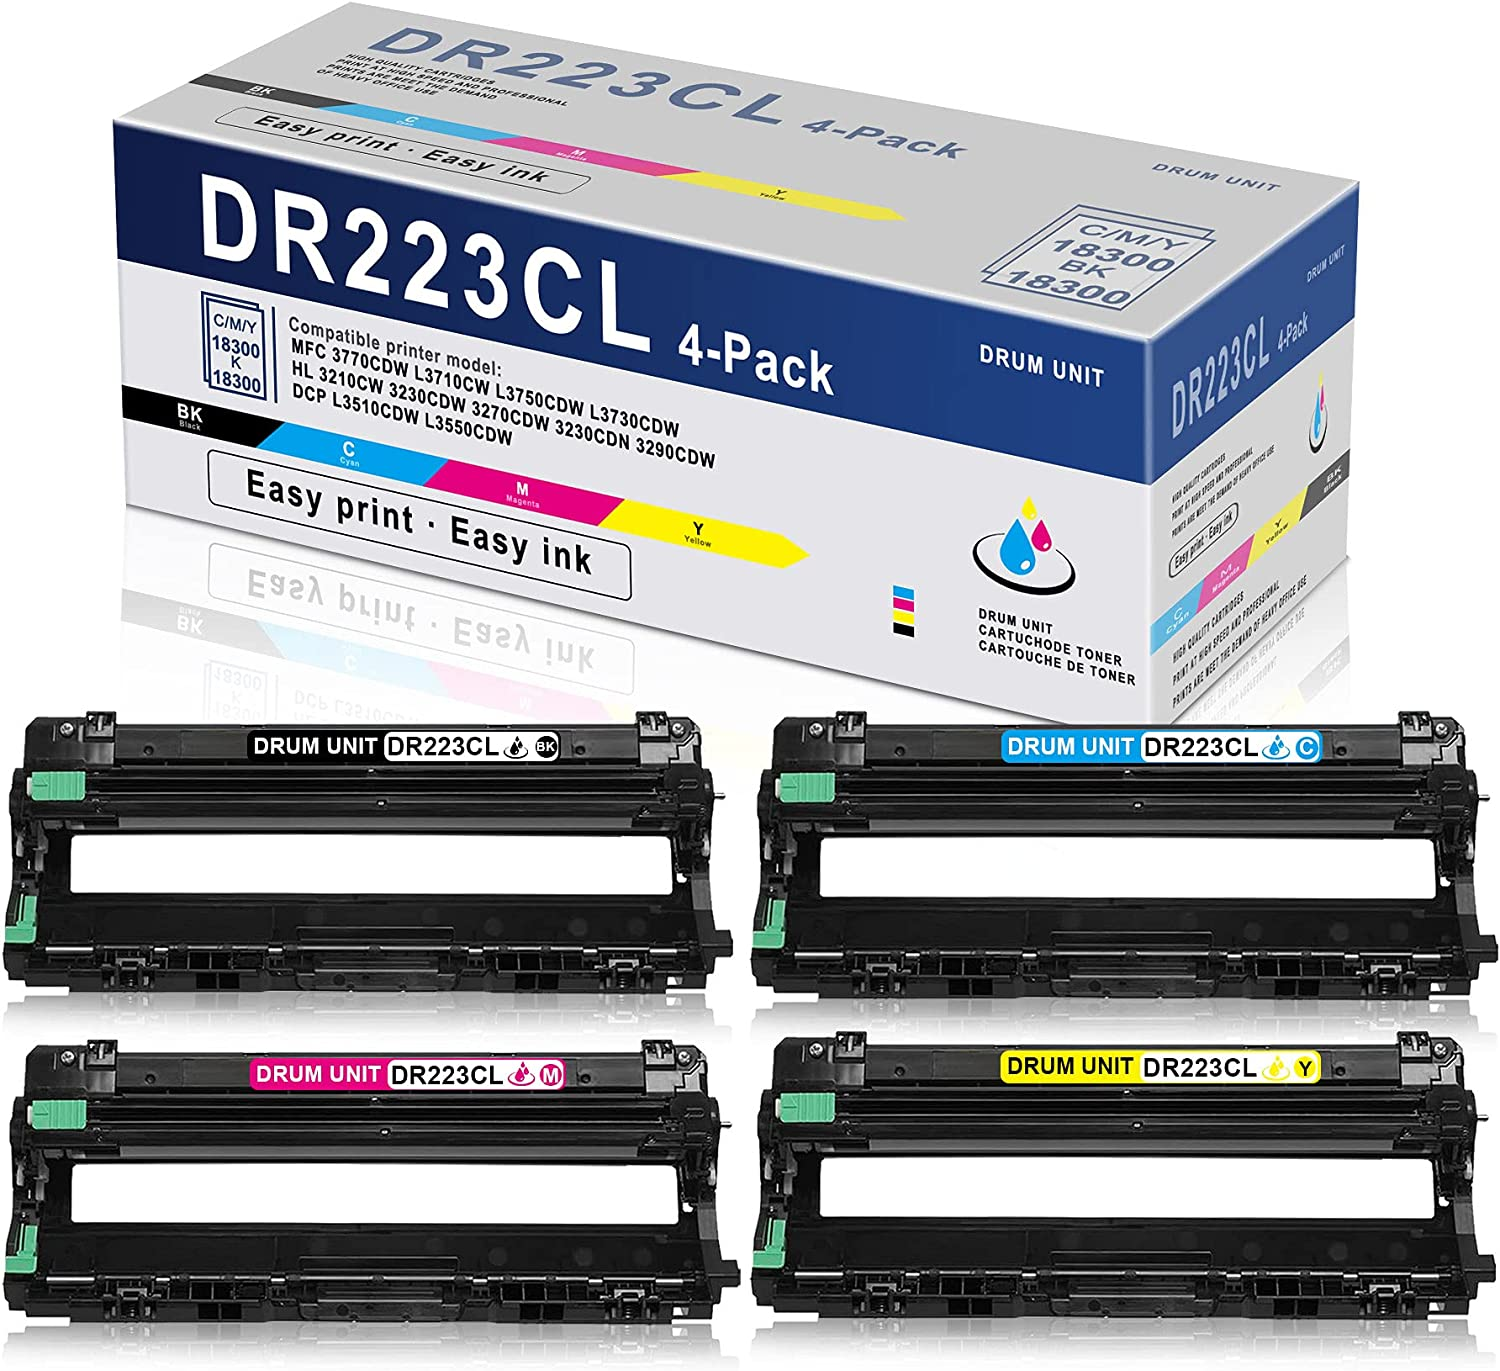 4PK (1BK+1C+1M+1Y) High Yield Drum Unit DR223CL DR-223CL Compatible Replacement for Brother MFC 3770CDW L3710CW L3750CDW L3730CDW HL 3230CDW 3270CDW 3230CDN 3290CDW DCP L3510CDW L3550CDW Printer